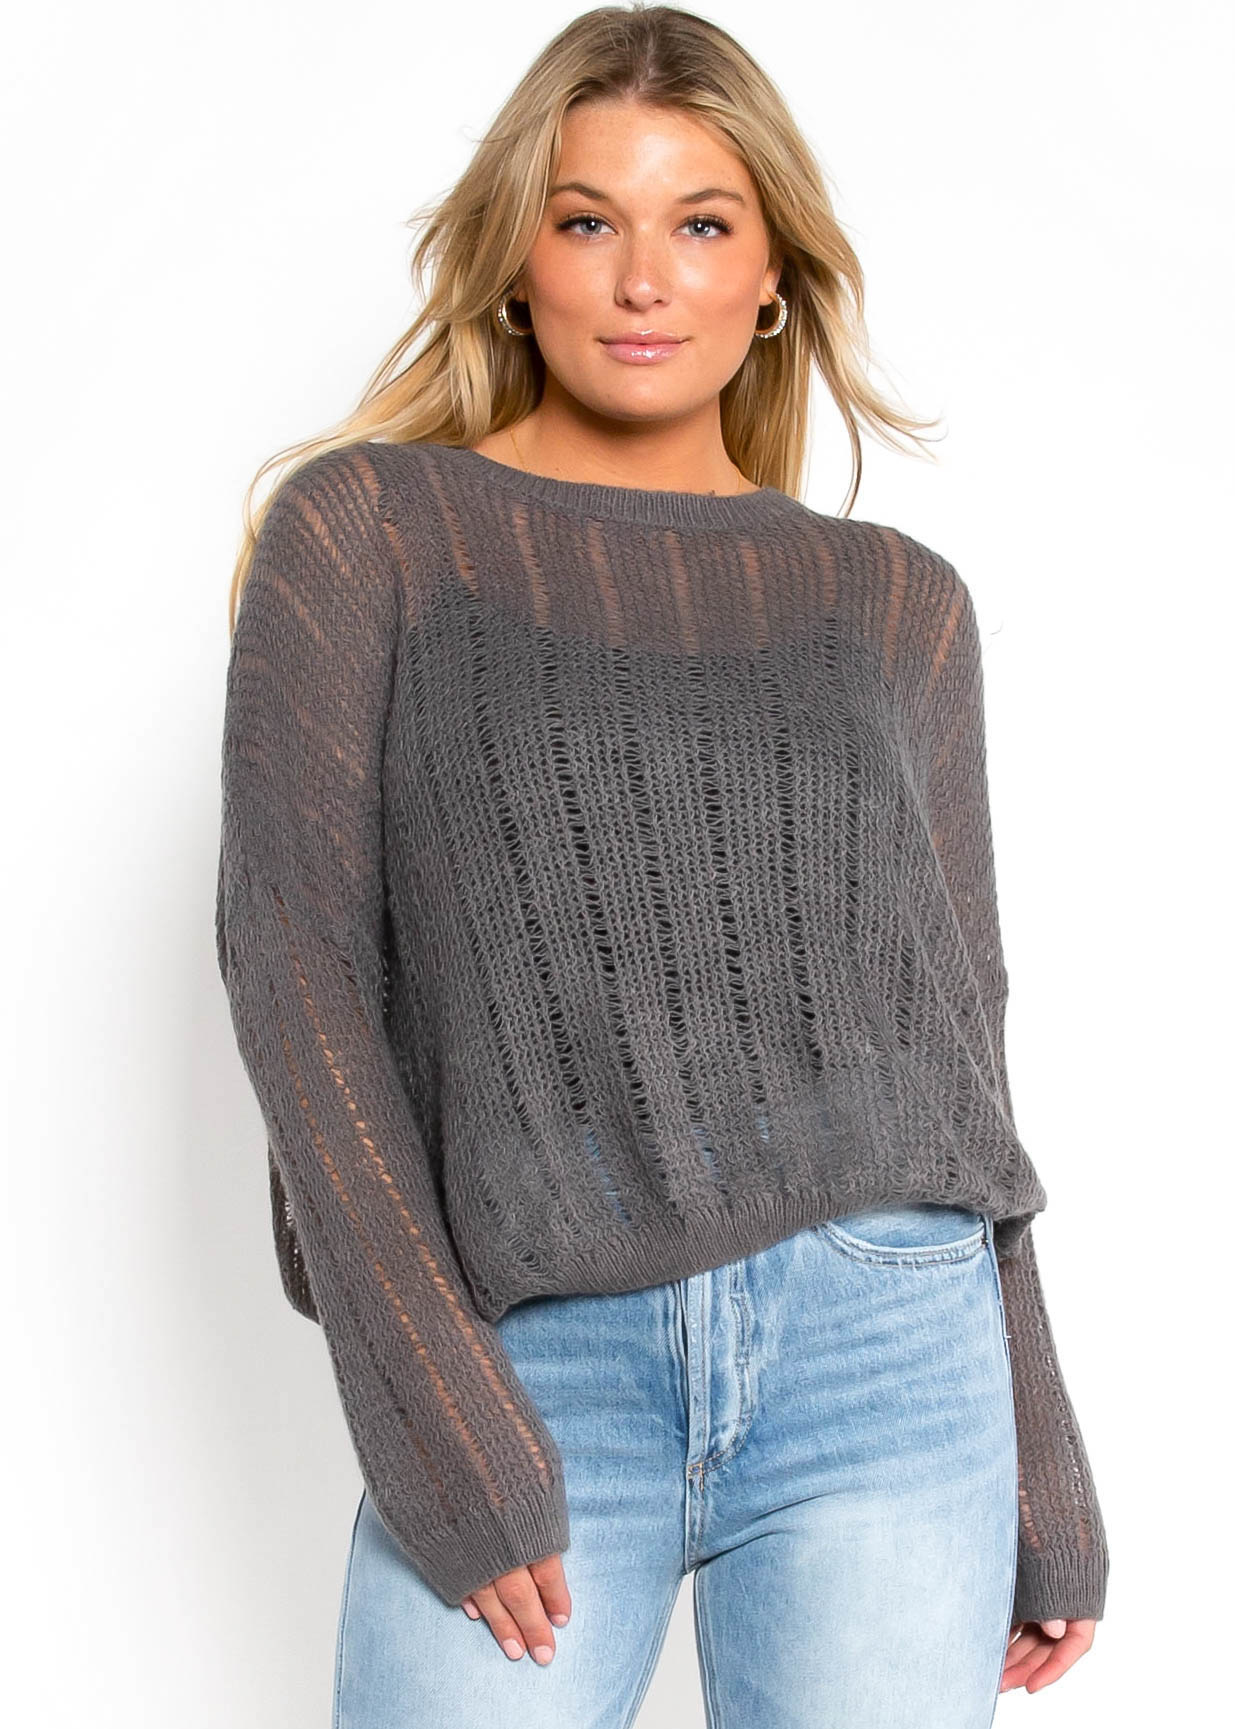 MIDTOWN OPEN KNIT SWEATER